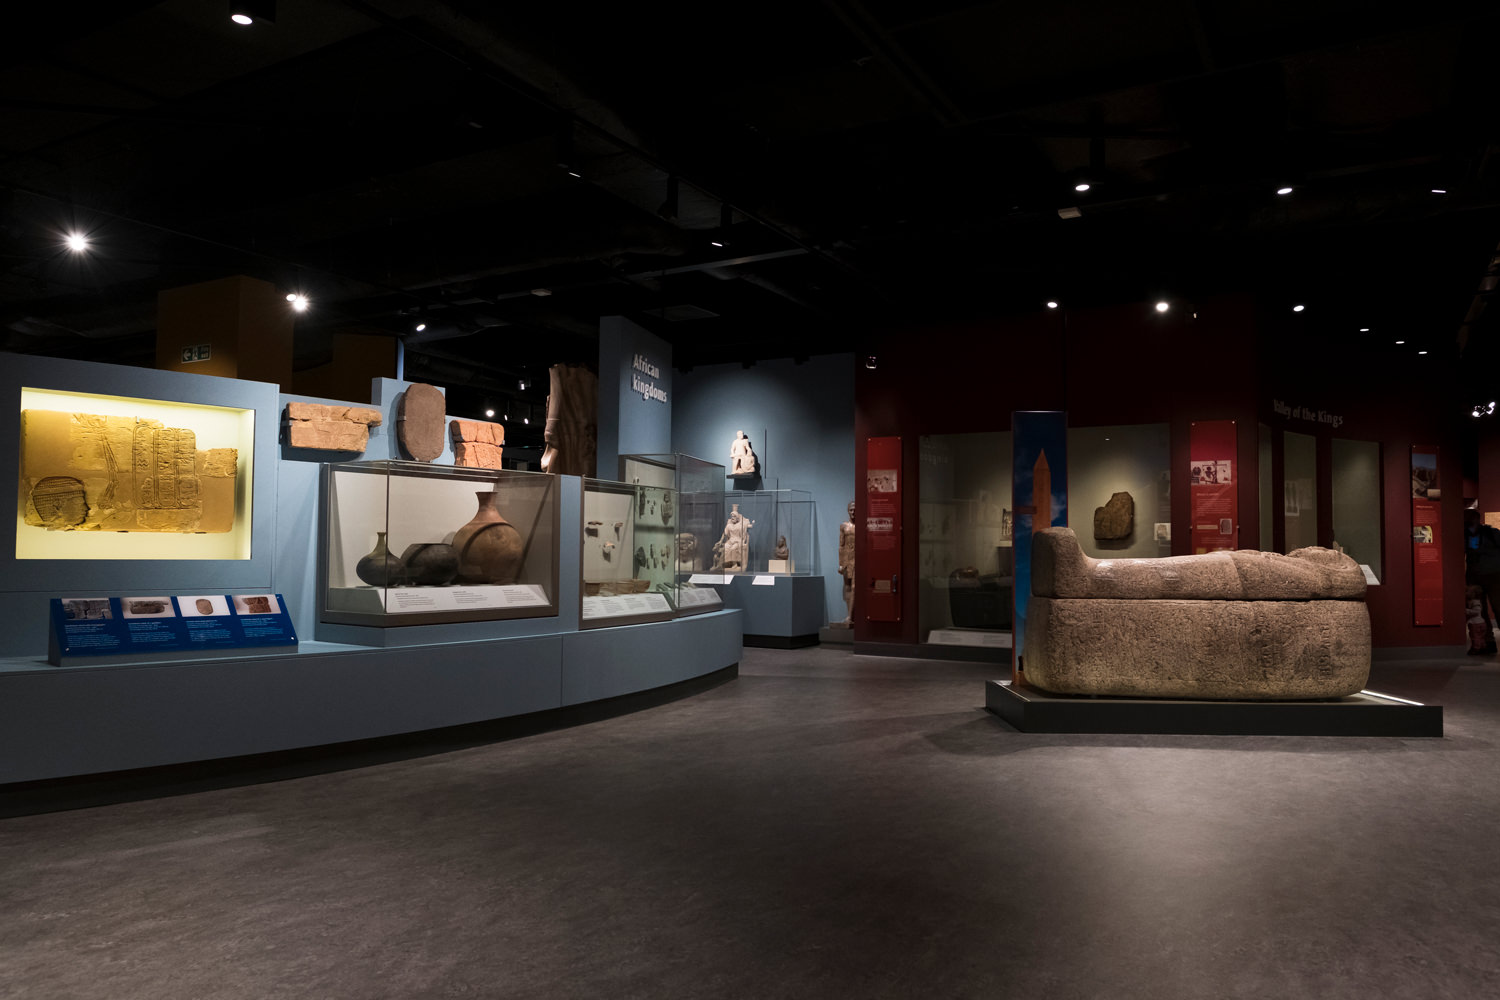 Looking across the gallery past the 'African Kingdoms' section, displaying Nubian artefacts. There's also a large, granite sarcophagus in the middle of the room